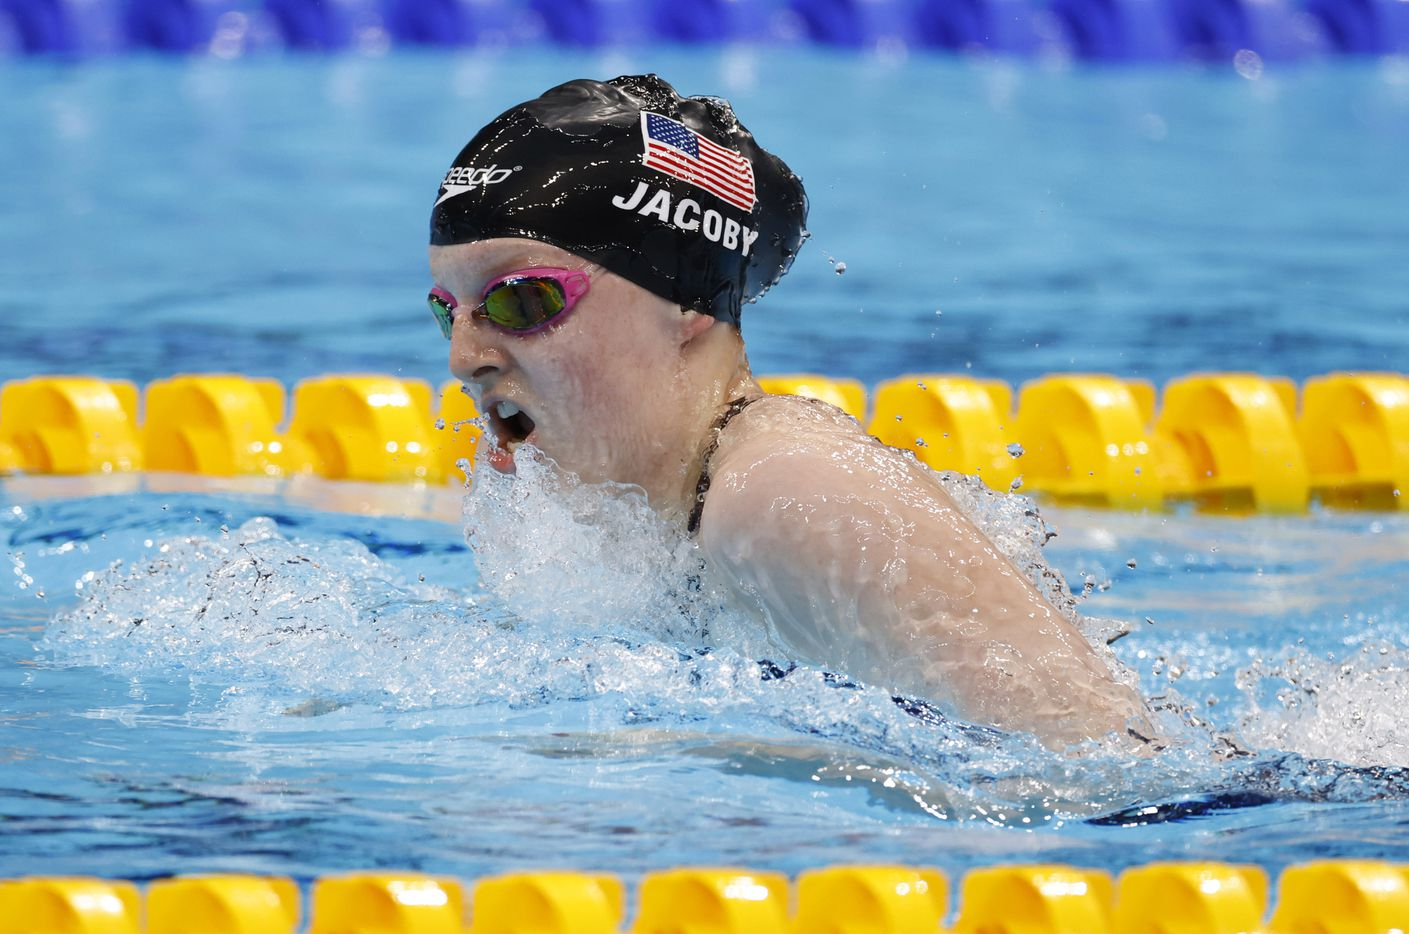 USA's Lydia Jacoby competes in the women's 4x100 medley relay during the postponed 2020 Tokyo Olympics at Tokyo Aquatics Centre, on Sunday, August 1, 2021, in Tokyo, Japan. USA finished in second with a time of 3:51.60 to earn a silver medal. (Vernon Bryant/The Dallas Morning News)